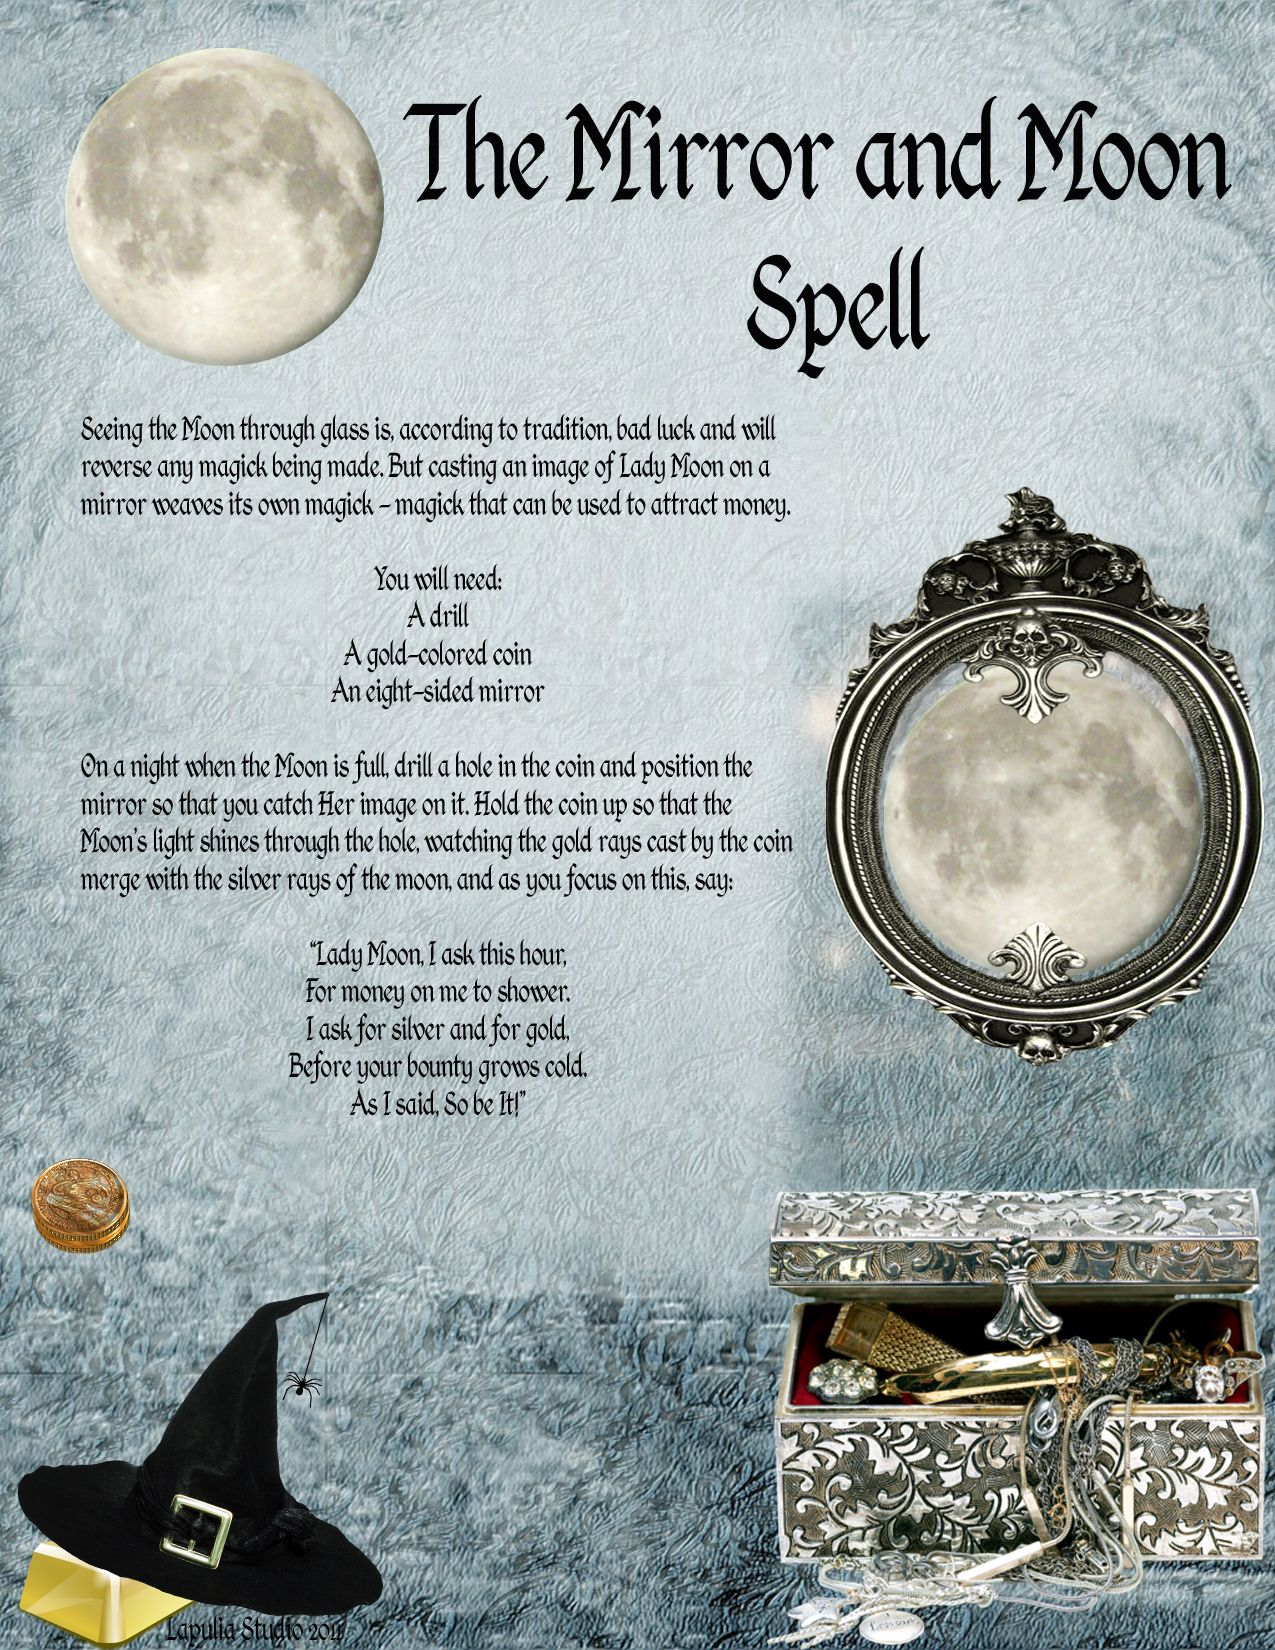 Money magick spell page 3 - LaPulia Book of Shadows